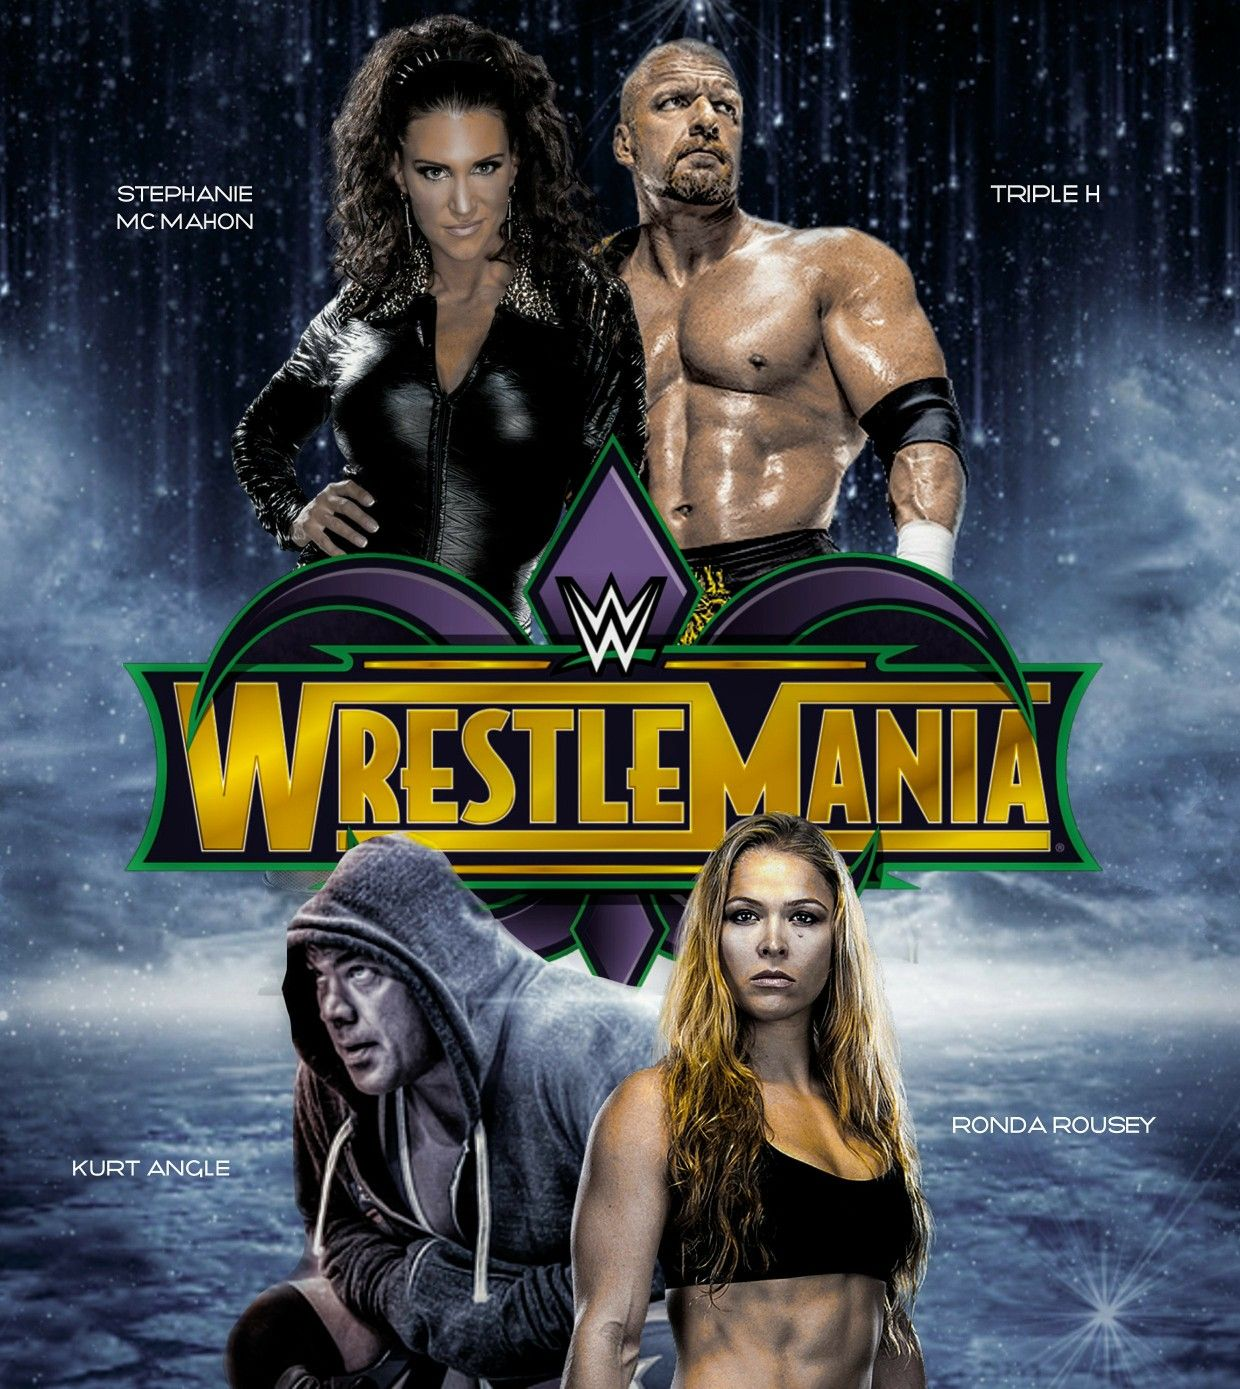 Latest News Update Hhh: WWE WrestleMania 34 (April 8th, 2018)